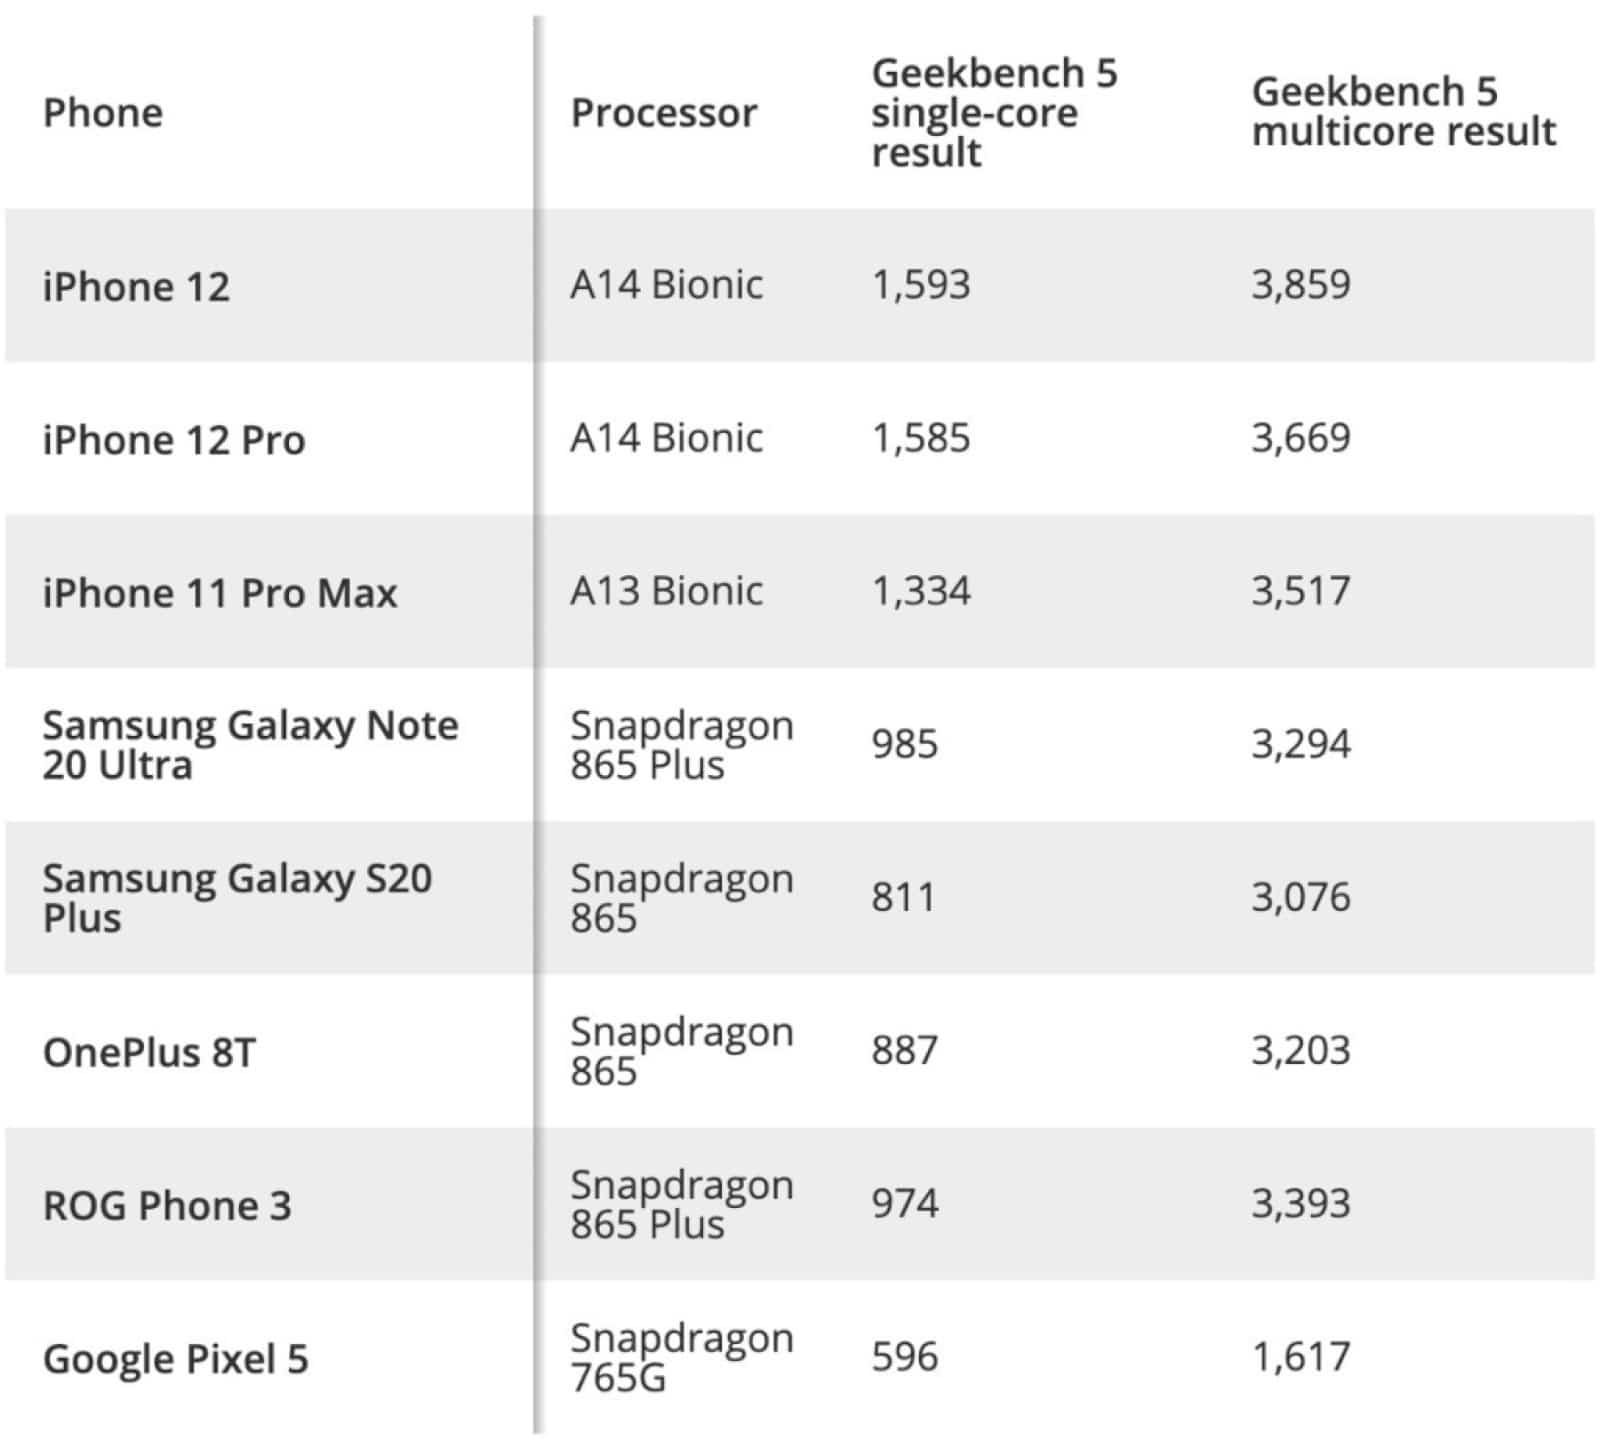 geekbench results by tom's guide of iphone 12